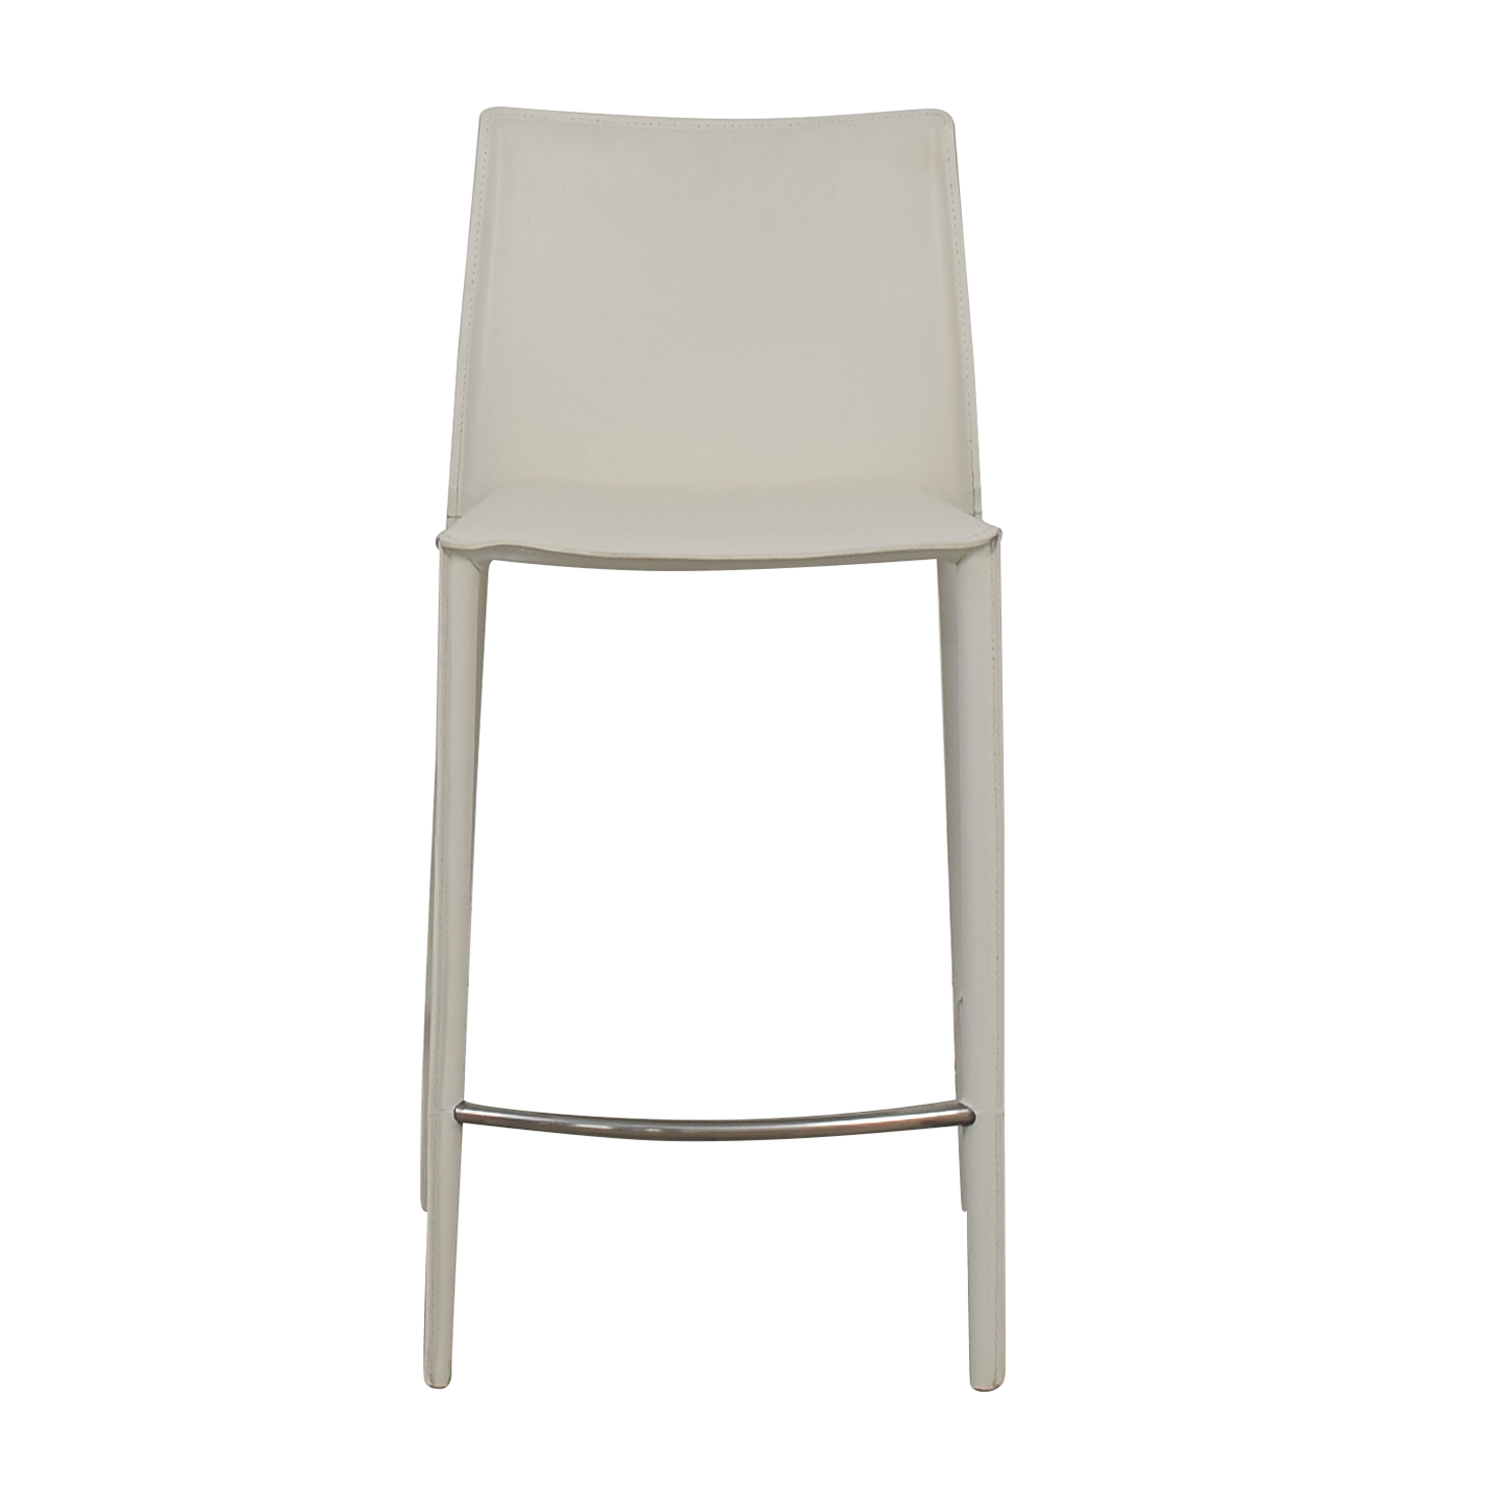 Shop Stool Used Furniture On Sale